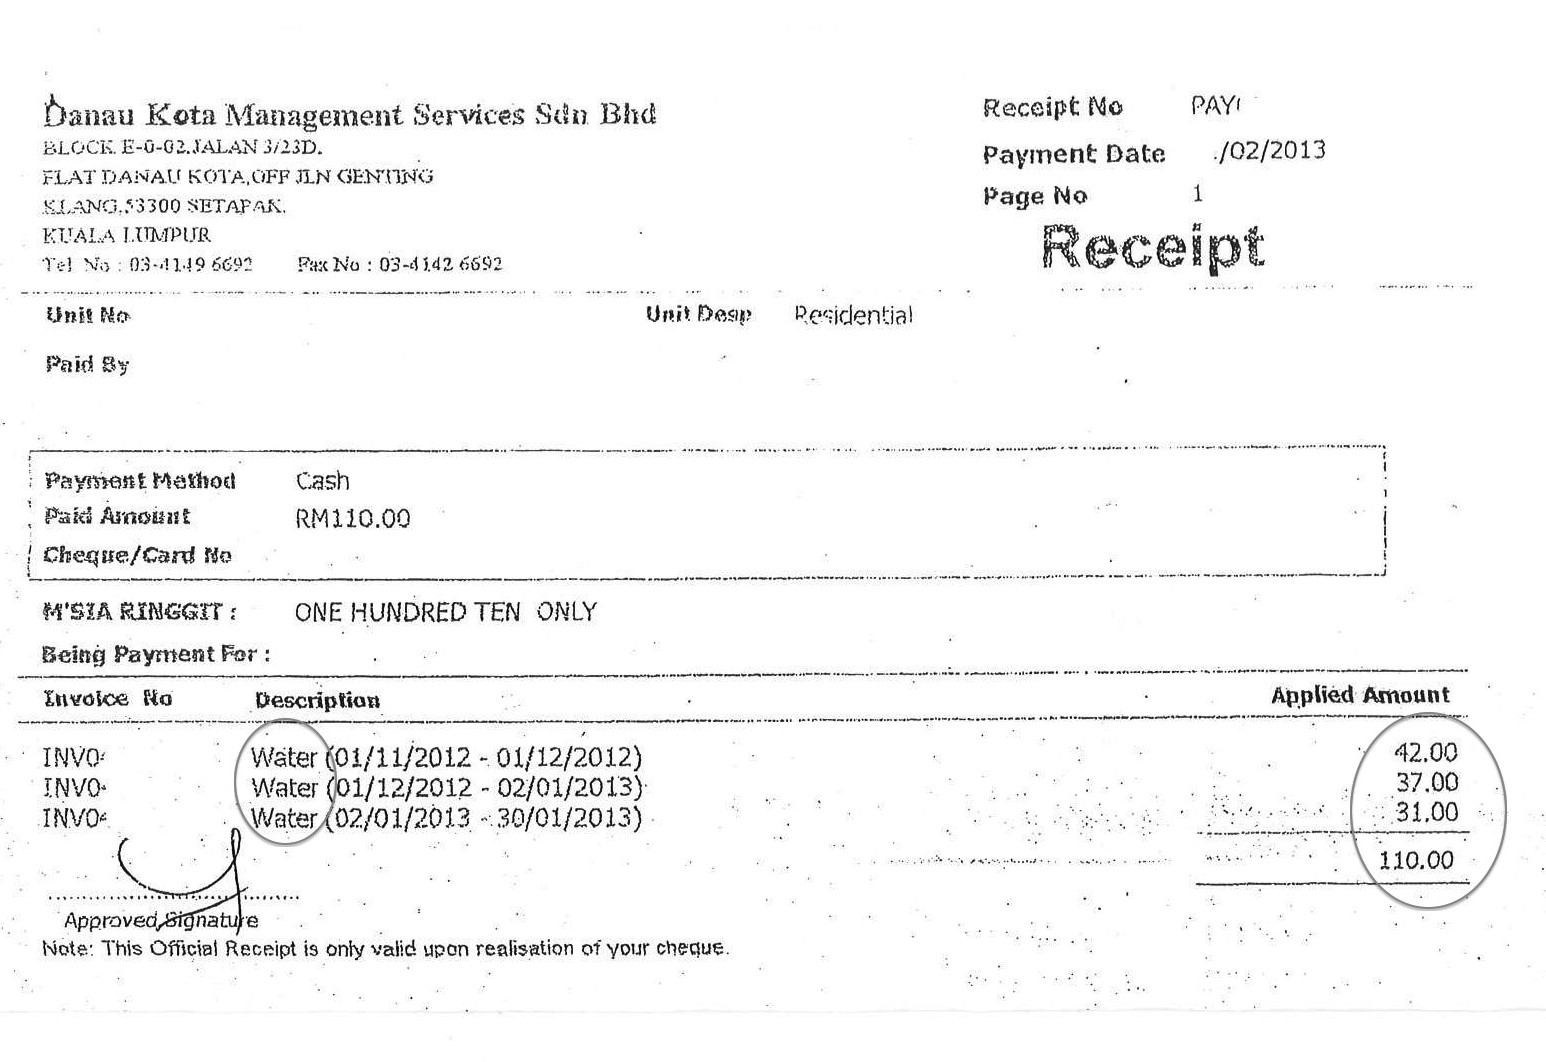 Doc12851660 Receipt for Payment Receipt For Payment – Paid Receipt